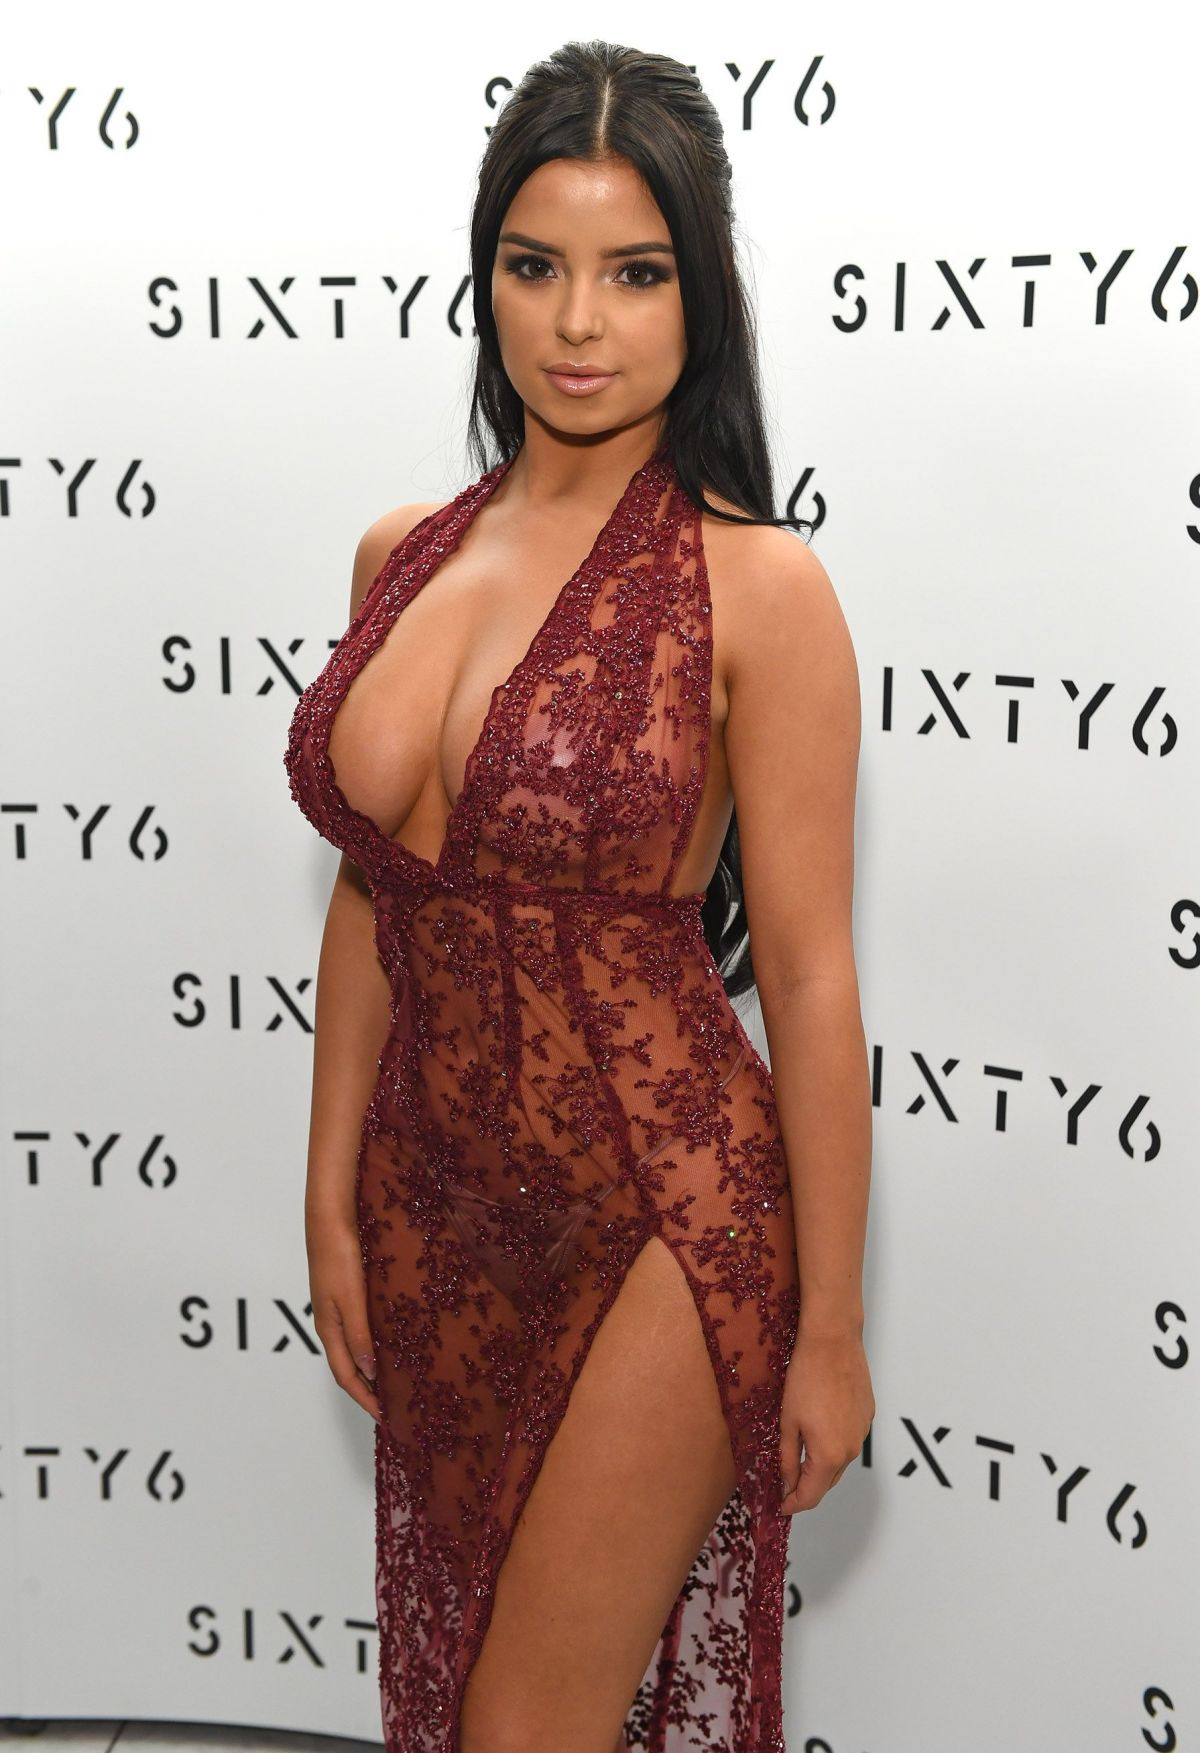 Demi Rose At Sixty6 Magazine Launch Party In London   demi-rose-at-sixty6-magazine-launch-party-in-london_23